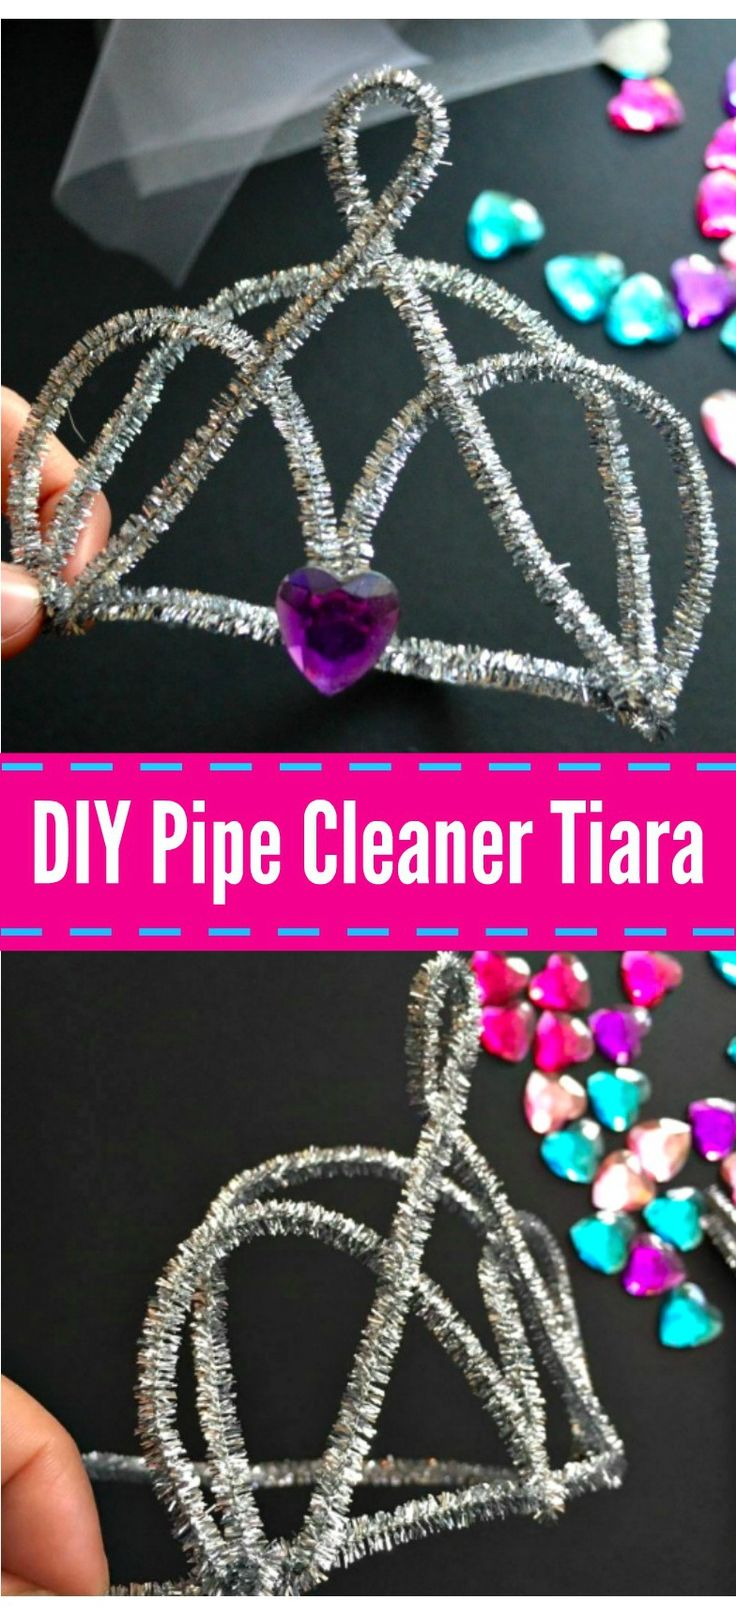 DIY Pipe Cleaner Tiara - These DIY pipe cleaner tiara's are perfect as a photo prop, playing dress up, costumes, or even a fun DIY for birthday parties!